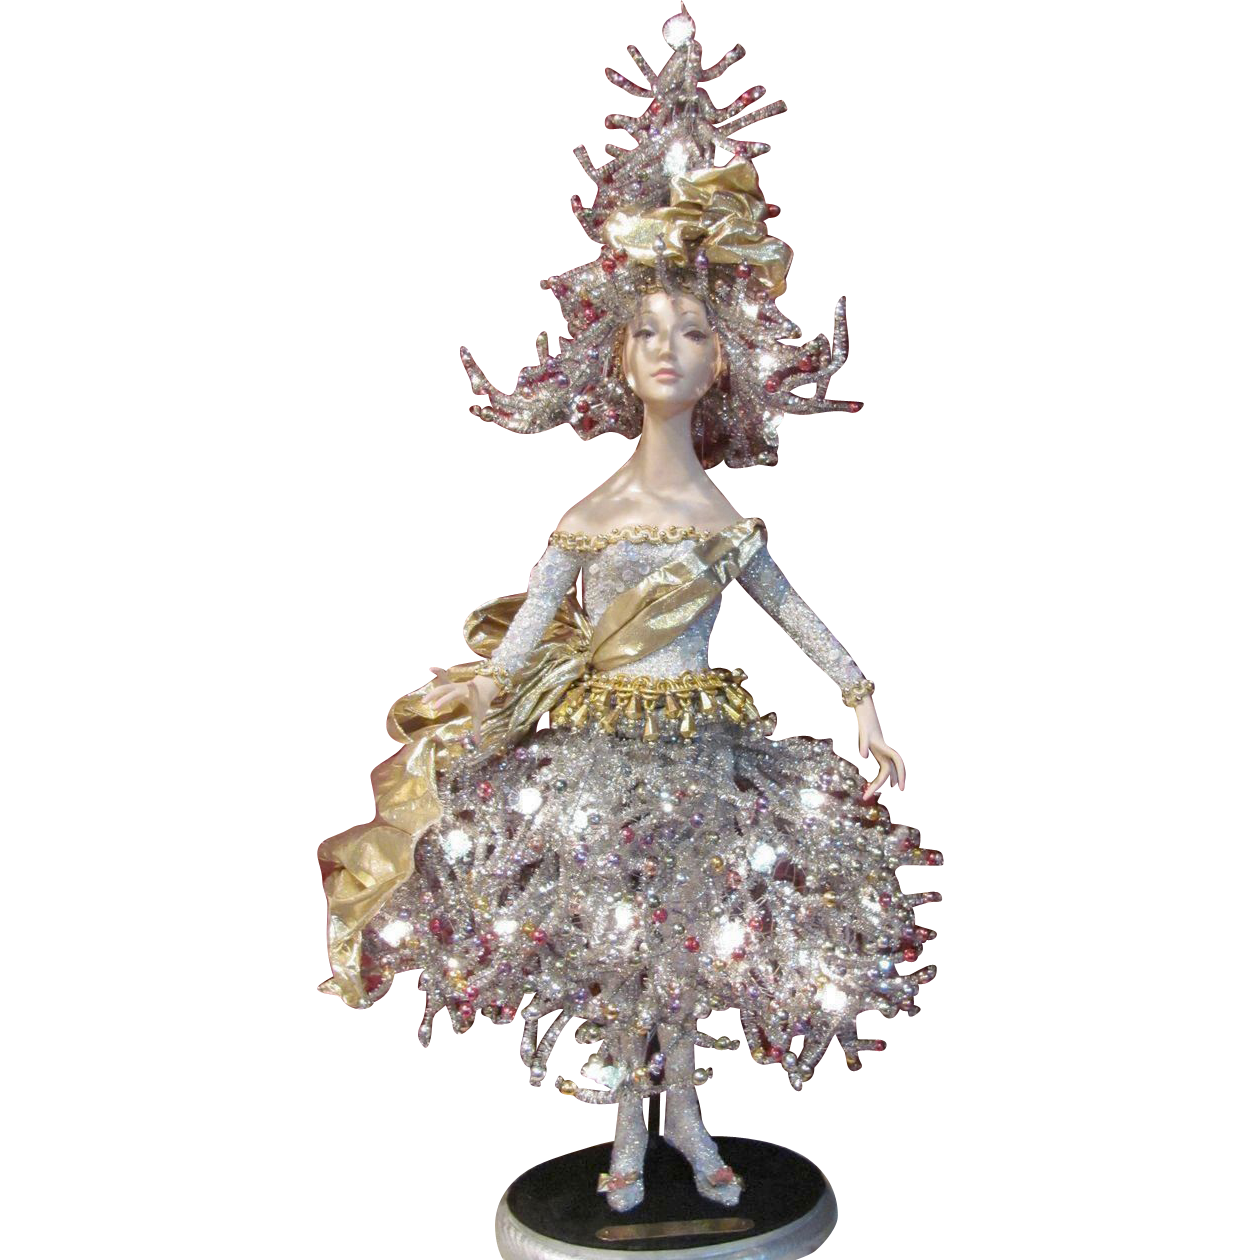 "'Jolie Noel' Christmas Tree Doll Light #1 by artist Bill O'Connor_Unique 28"" tall_Original Art Doll Light_FREE SHIPPING in USA"